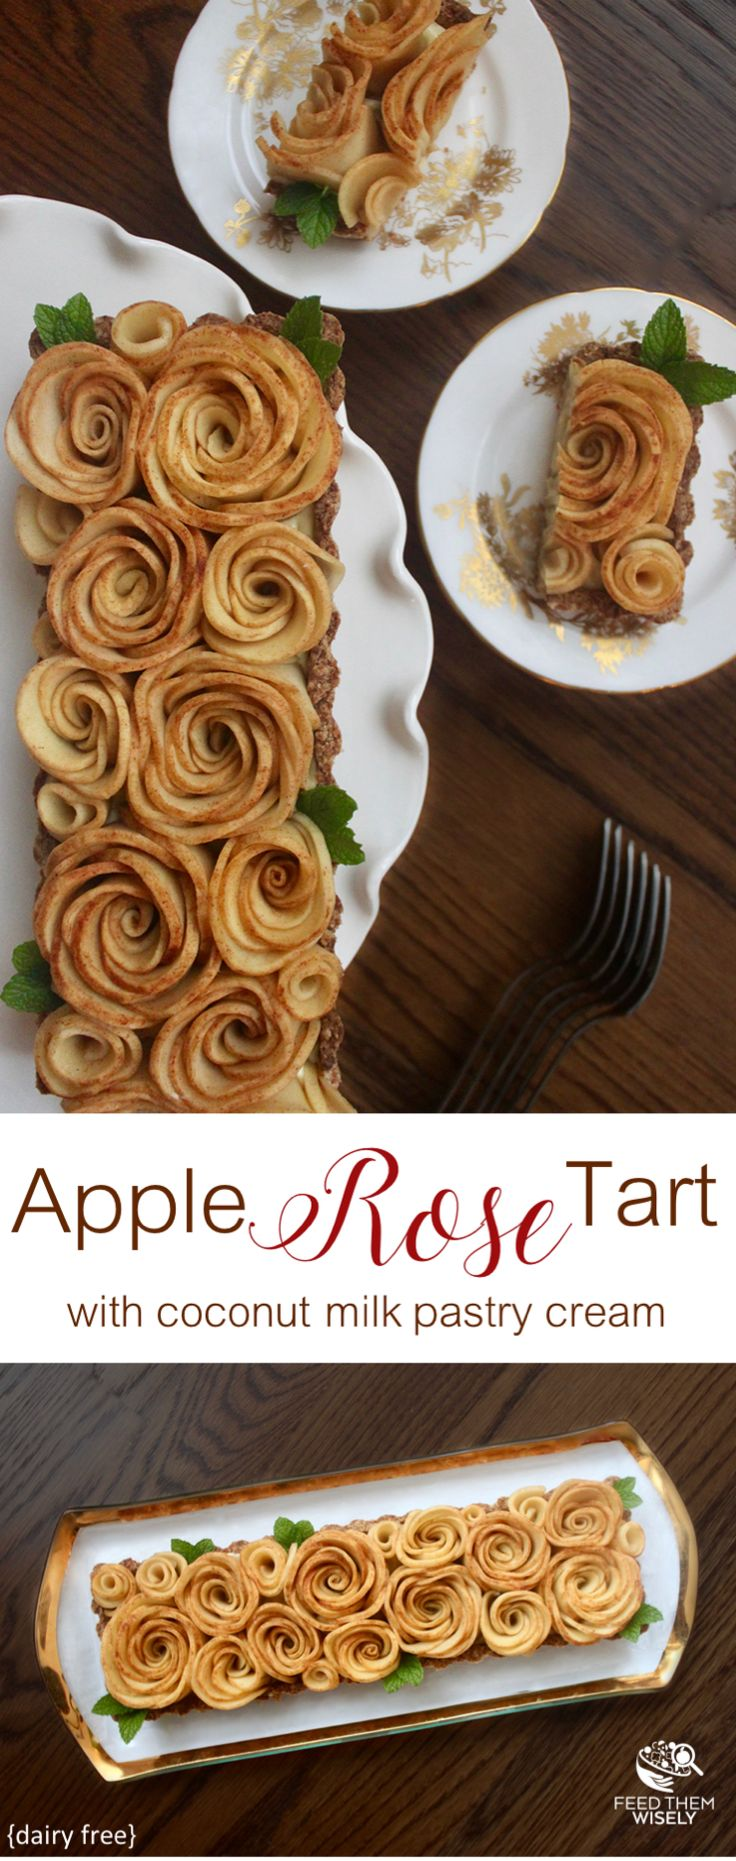 Delight your guests with this dairy-free Apple Rose Tart. Delicious baked apple roses sit on a bed of silky coconut cream in an almond whole wheat pastry crust. #dairyfree #dairyfreerecipe #appletart #applerose #holidayrecipes #dessertrecipes